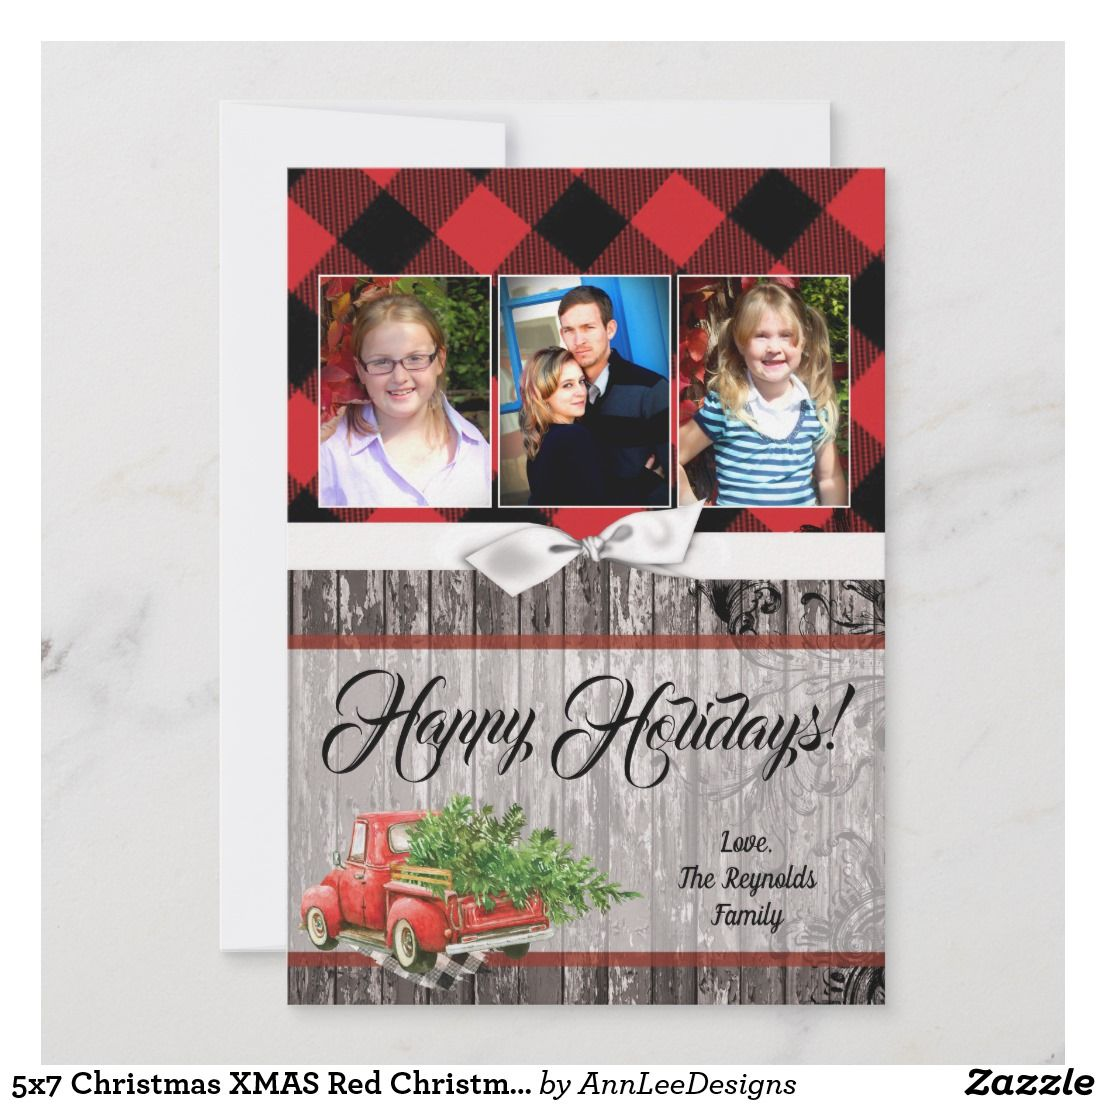 5x7 Christmas Xmas Red Christmas Truck Photo Card This 5x7 Sized Chic And Trendy Christmas Card Is Both 5x7 Christmas Cards Holiday Design Card Christmas Truck